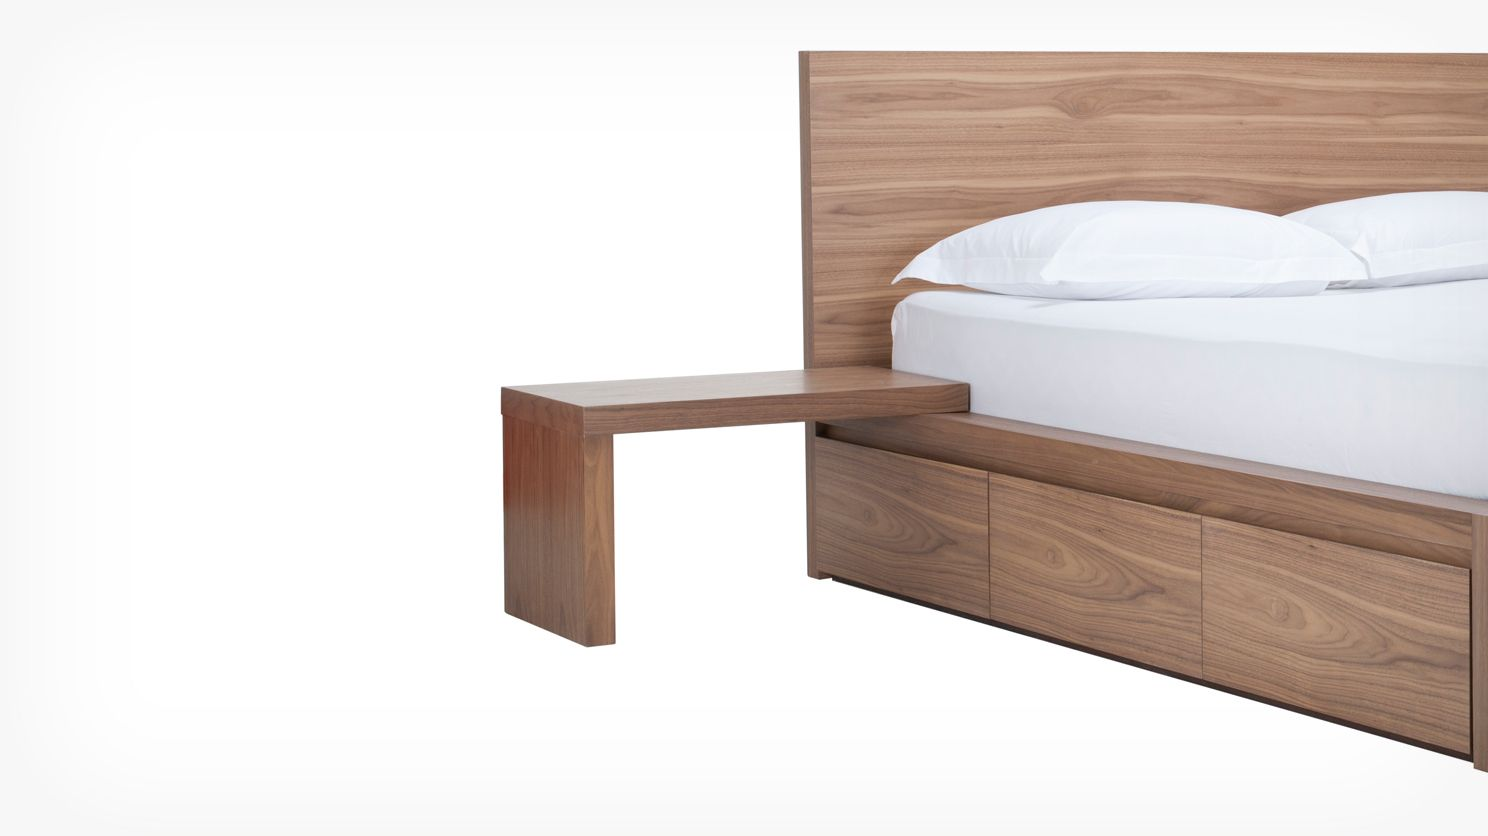 simple bed l nightstand walnut corner w bed & simple bed l nightstand walnut corner w bed | Furniture | Pinterest ...